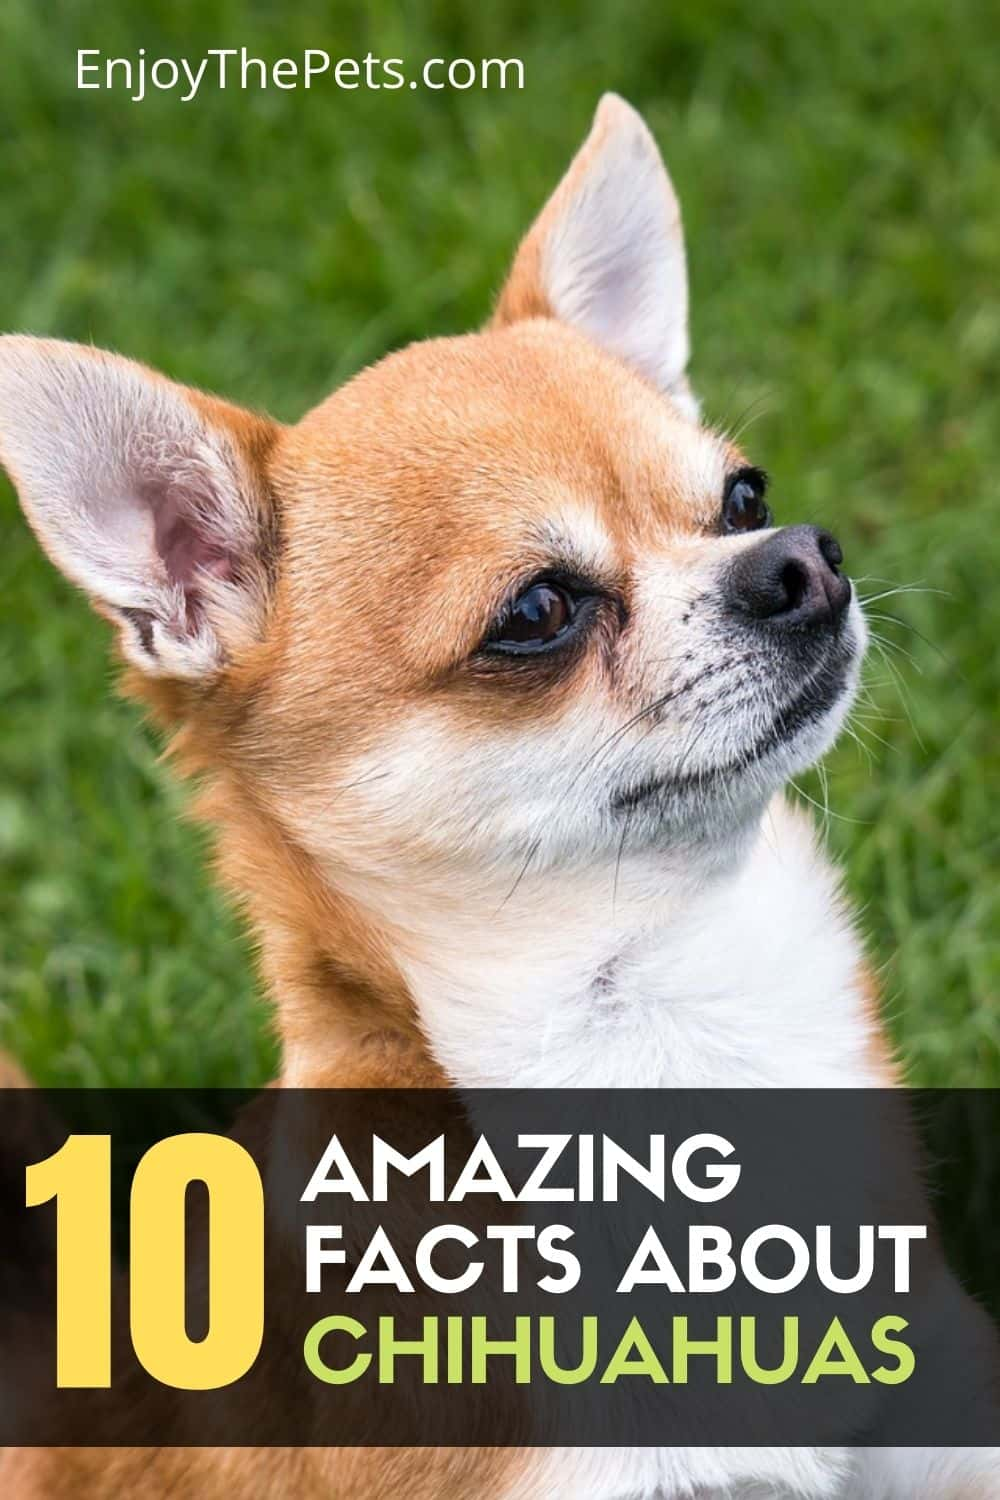 10 Facts about Chihuahuas